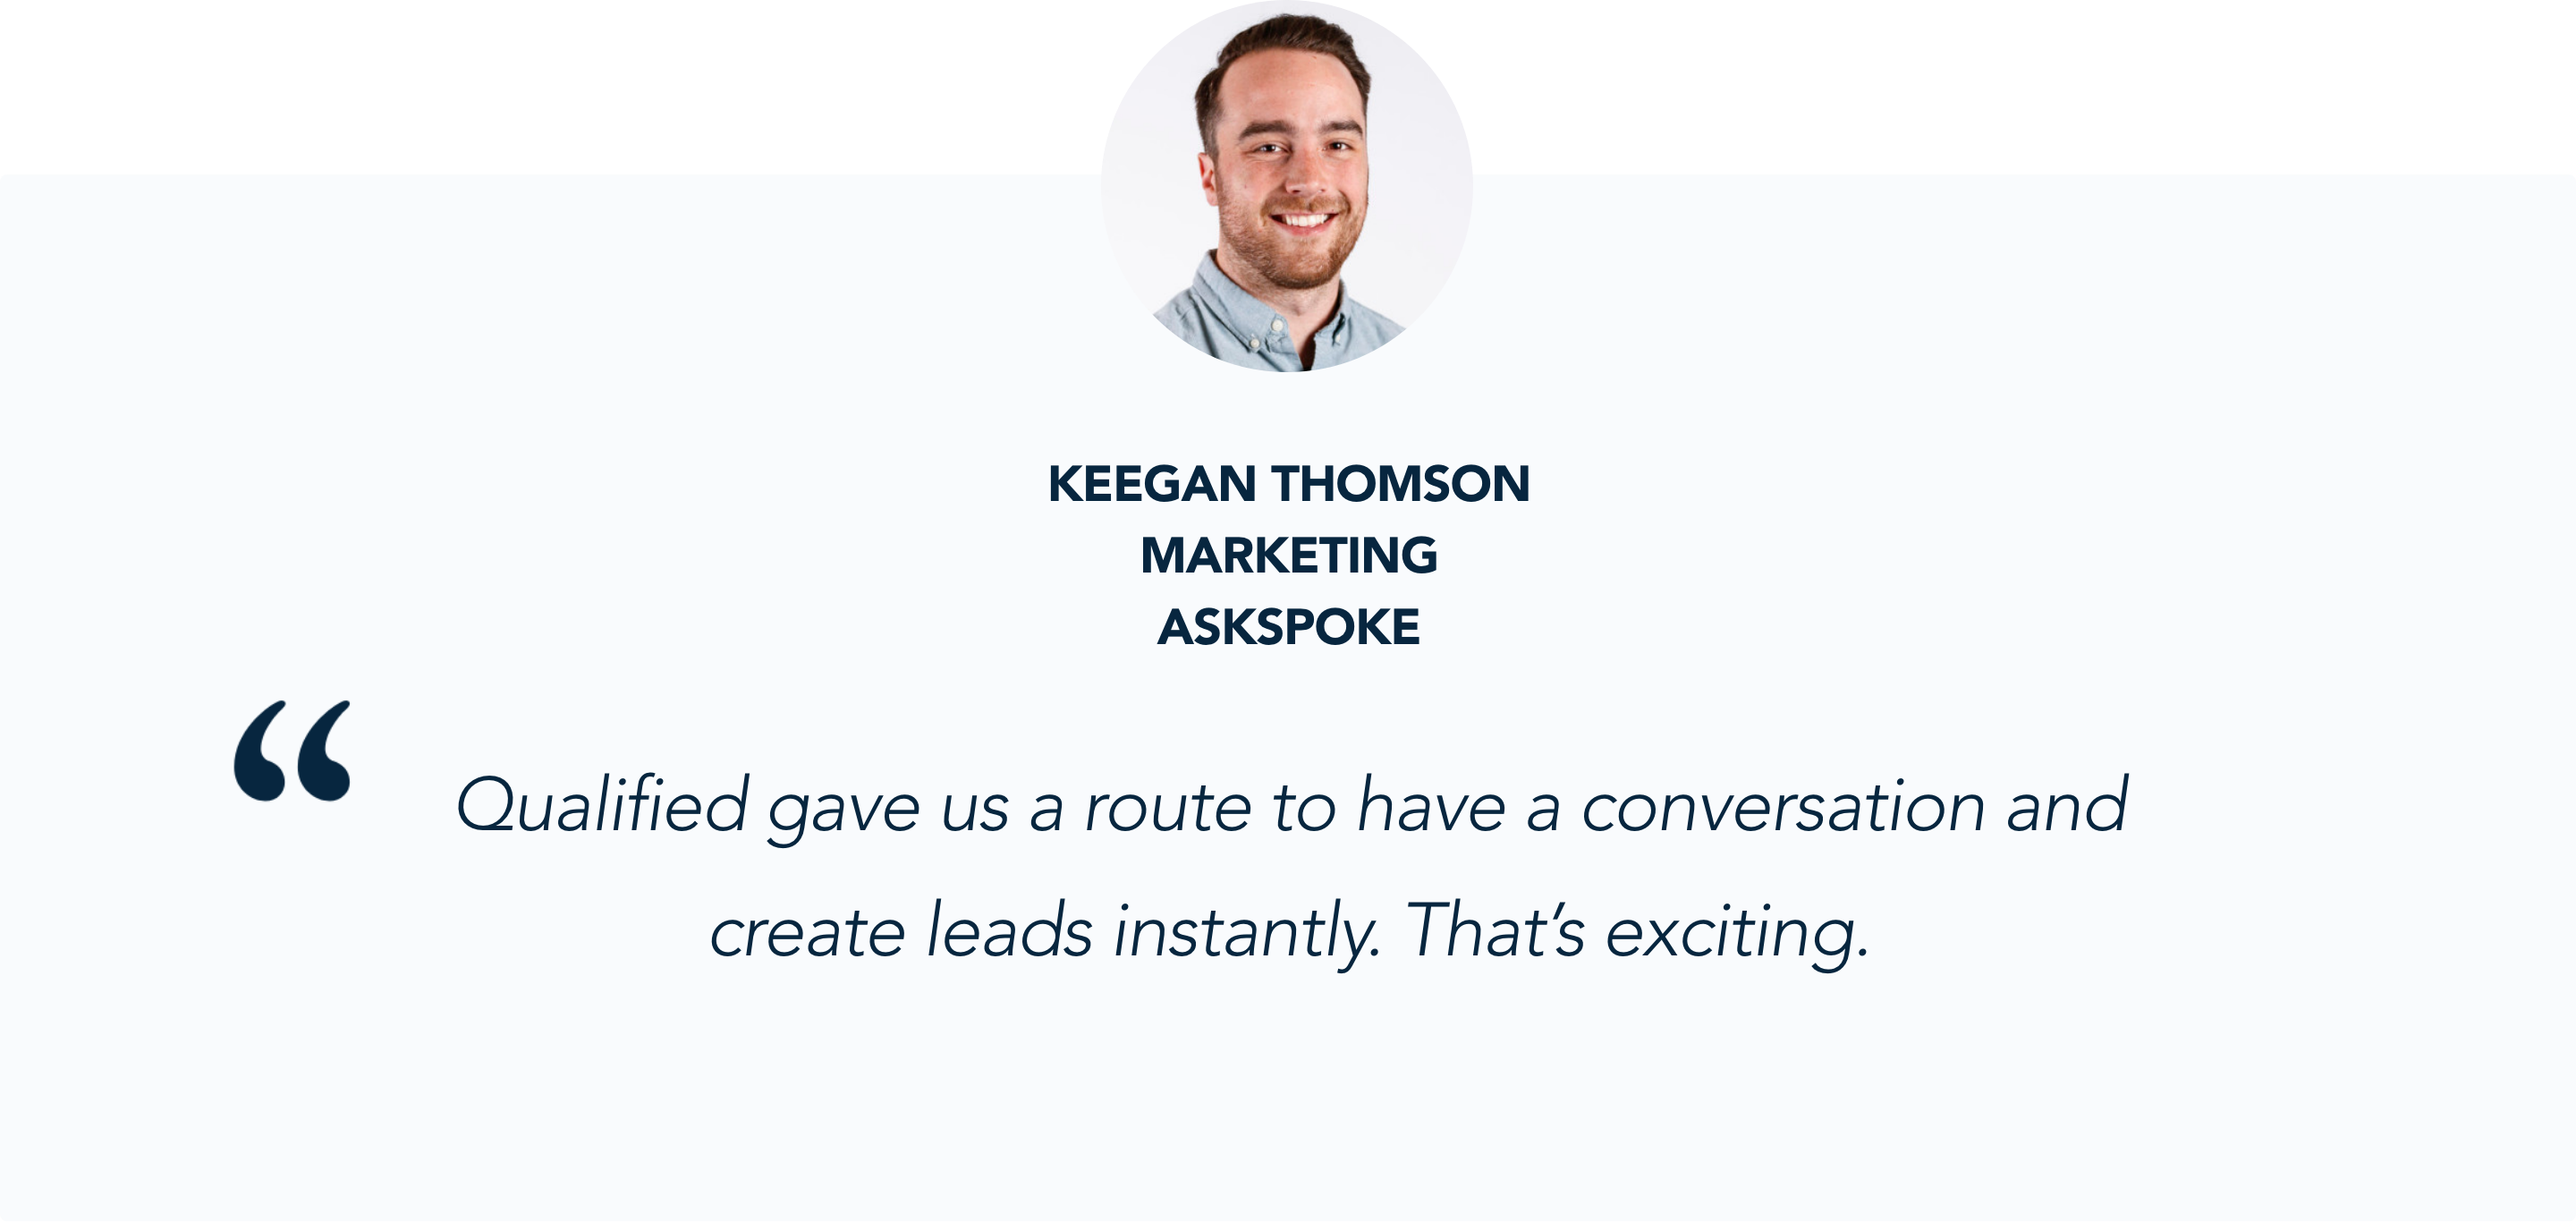 Keegan Thompson, Marketing at askSpoke, shares his experience with Qualified's Conversational Marketing application